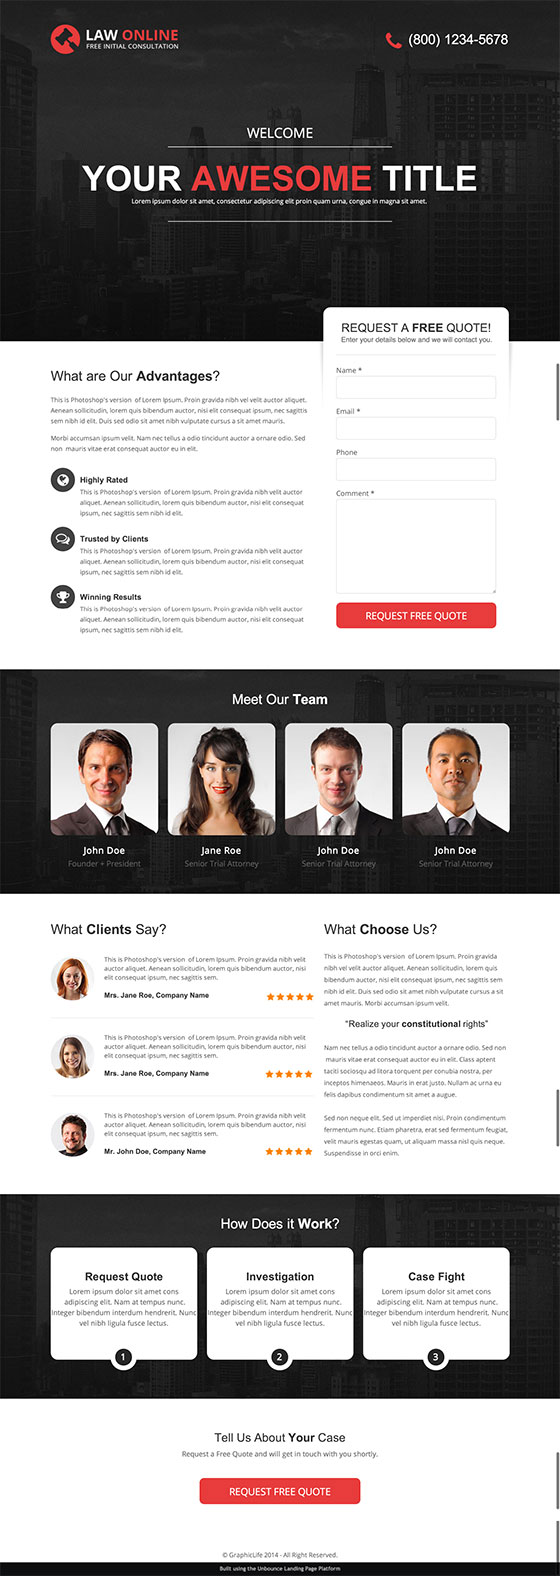 law-online-landing-page